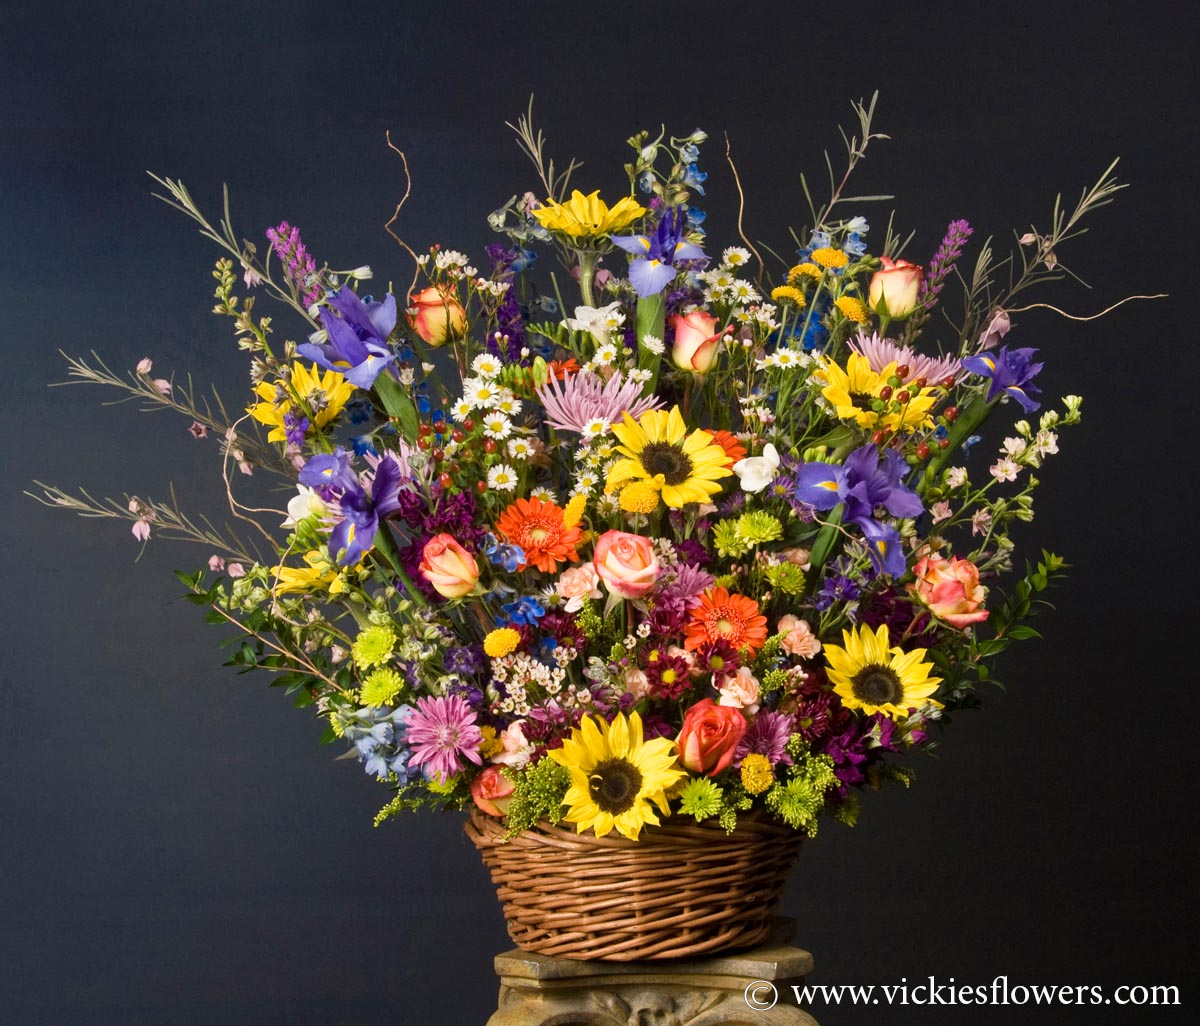 Sympathy flowers and plants vickies flowers brighton co florist funeral sympathy flowers 017 295 large basket 300 plus tax and delivery large basket of mixed wild flowers including blue iris yellow sunflowers izmirmasajfo